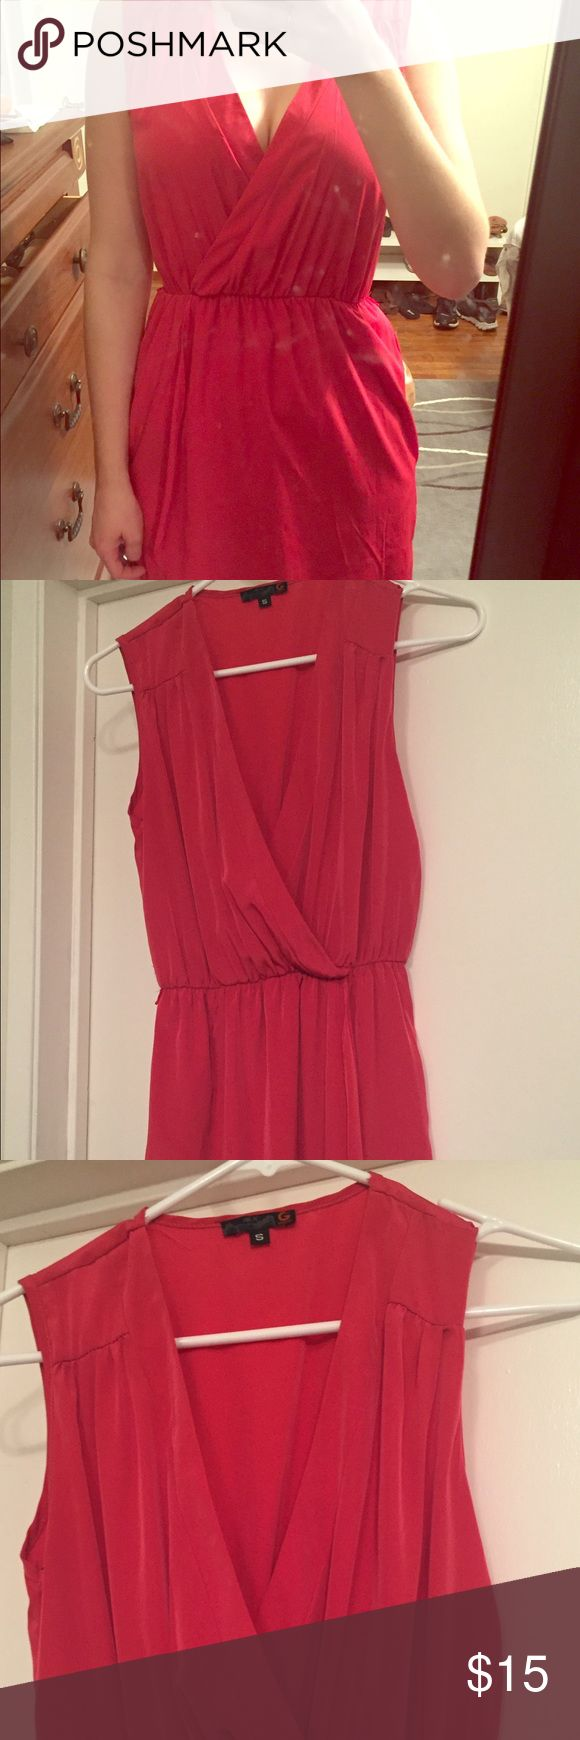 G by Guess dress 💋👠💄❤️ Little pink dress. Low cut, can be worn with or without bandeau underneath. Cute little belt can be added around the waste. Worn once. G by Guess Dresses Mini